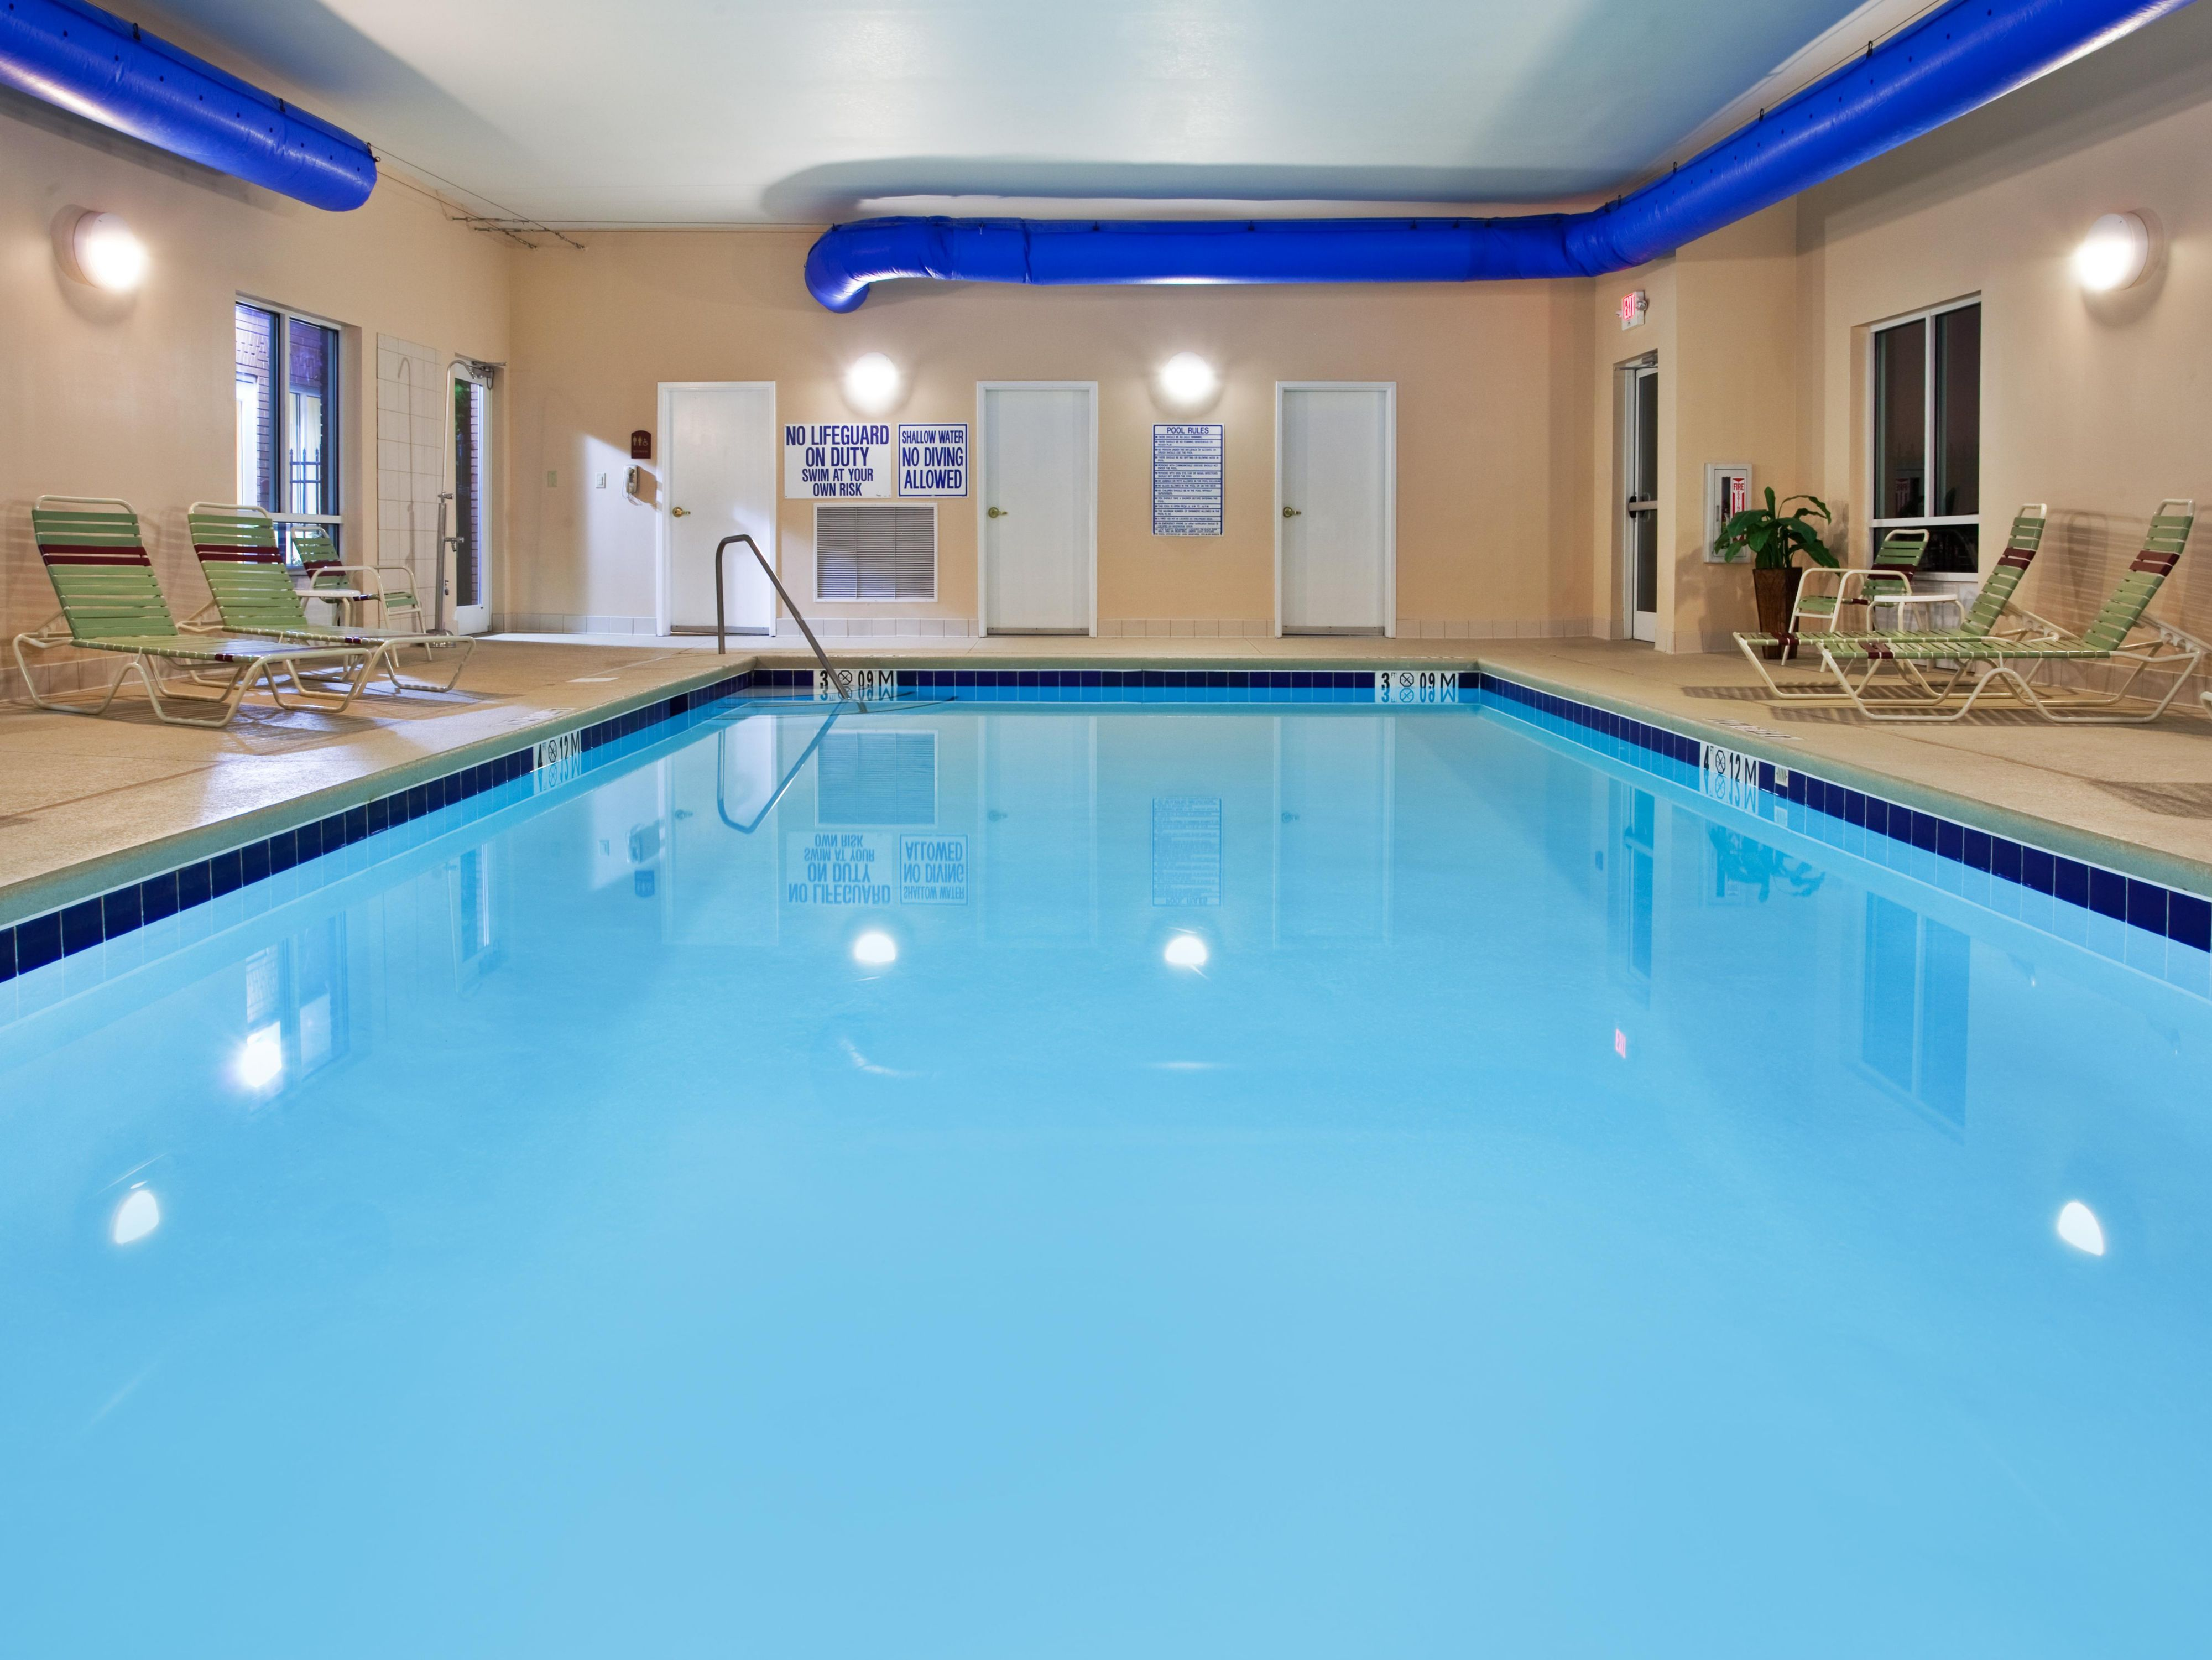 Woodruff Road Hotel with Indoor Pool in Greenville, SC